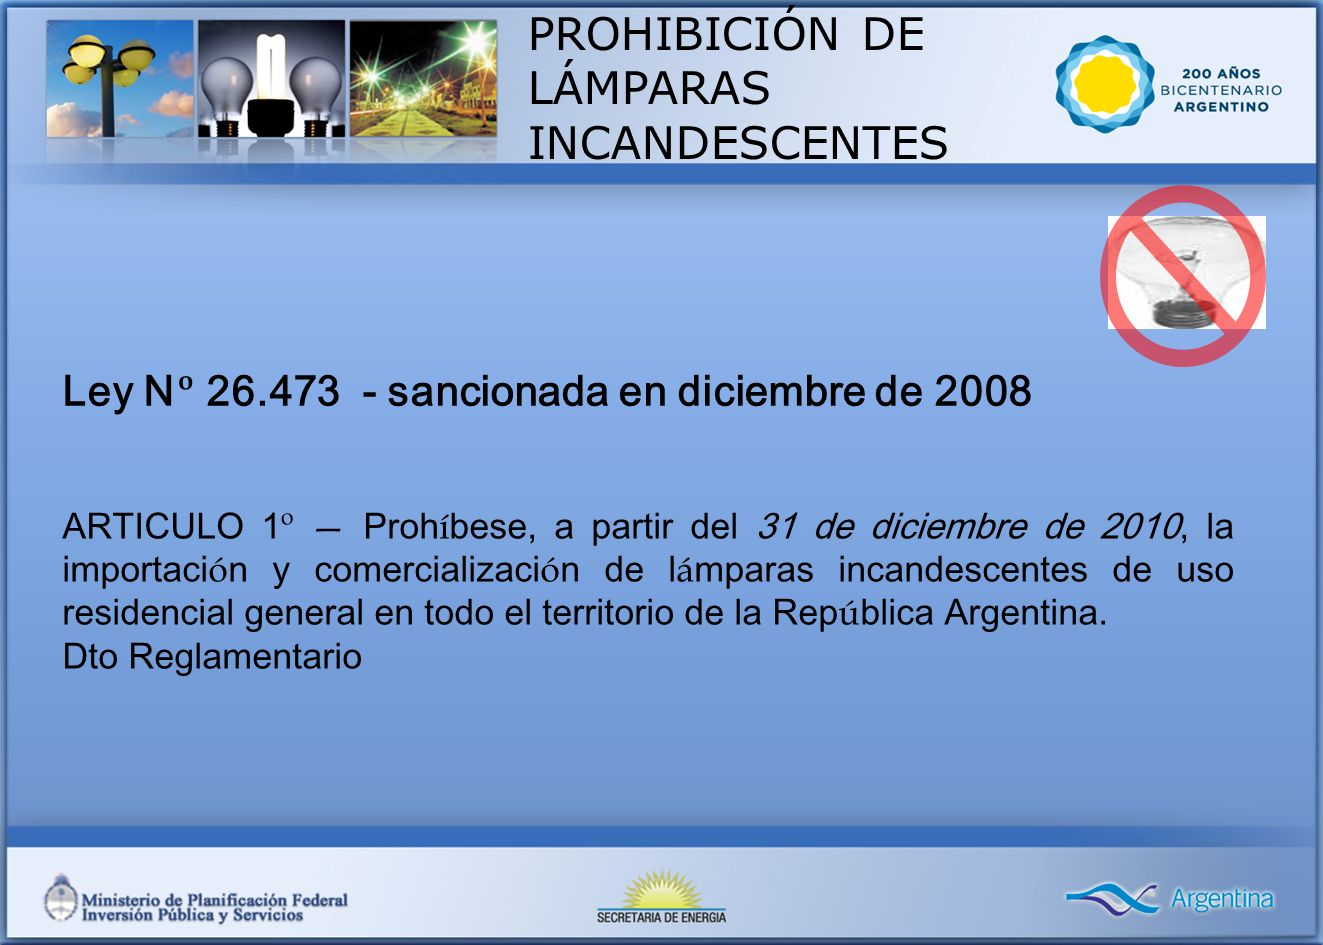 PROHIBICIÓN DE LÁMPARAS INCANDESCENTES